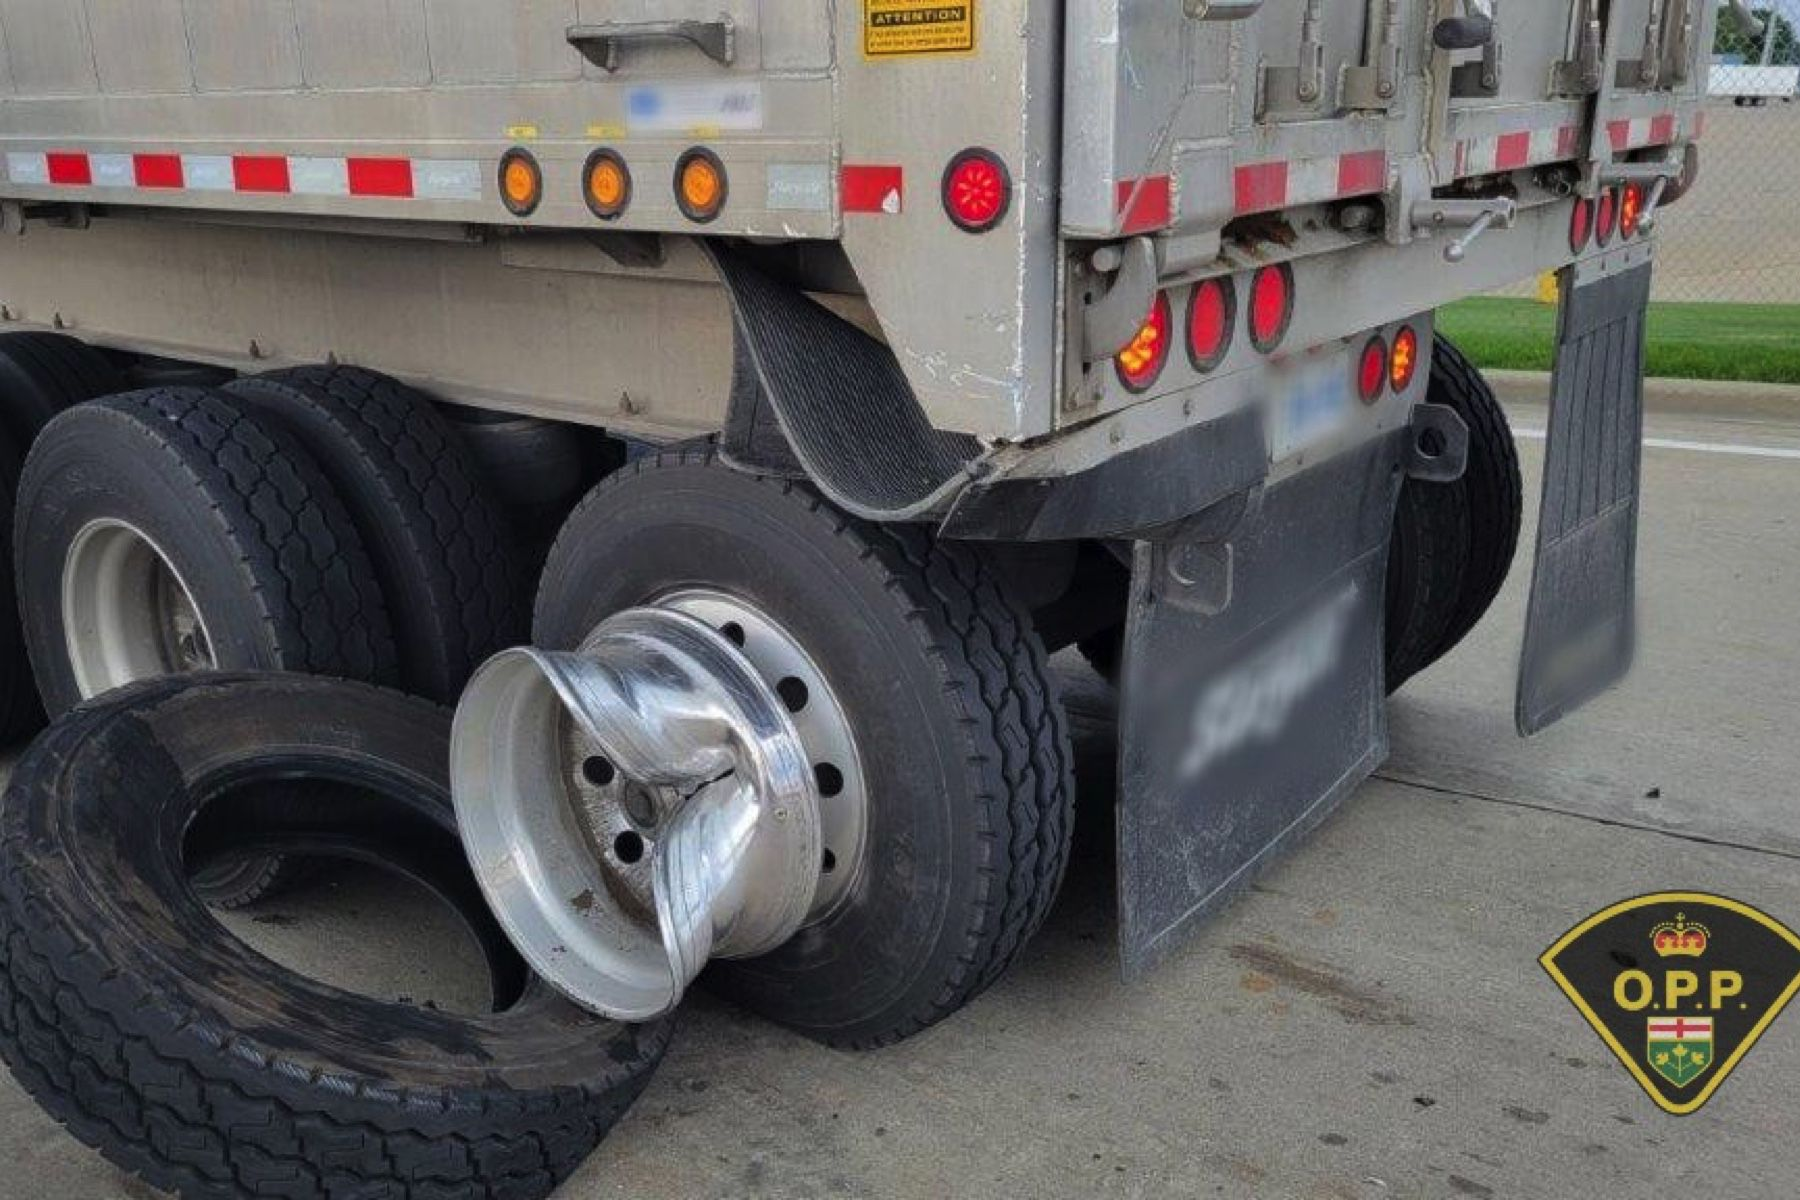 Triple trucker tire trouble- The wheels were coming off on Ontario highways this week